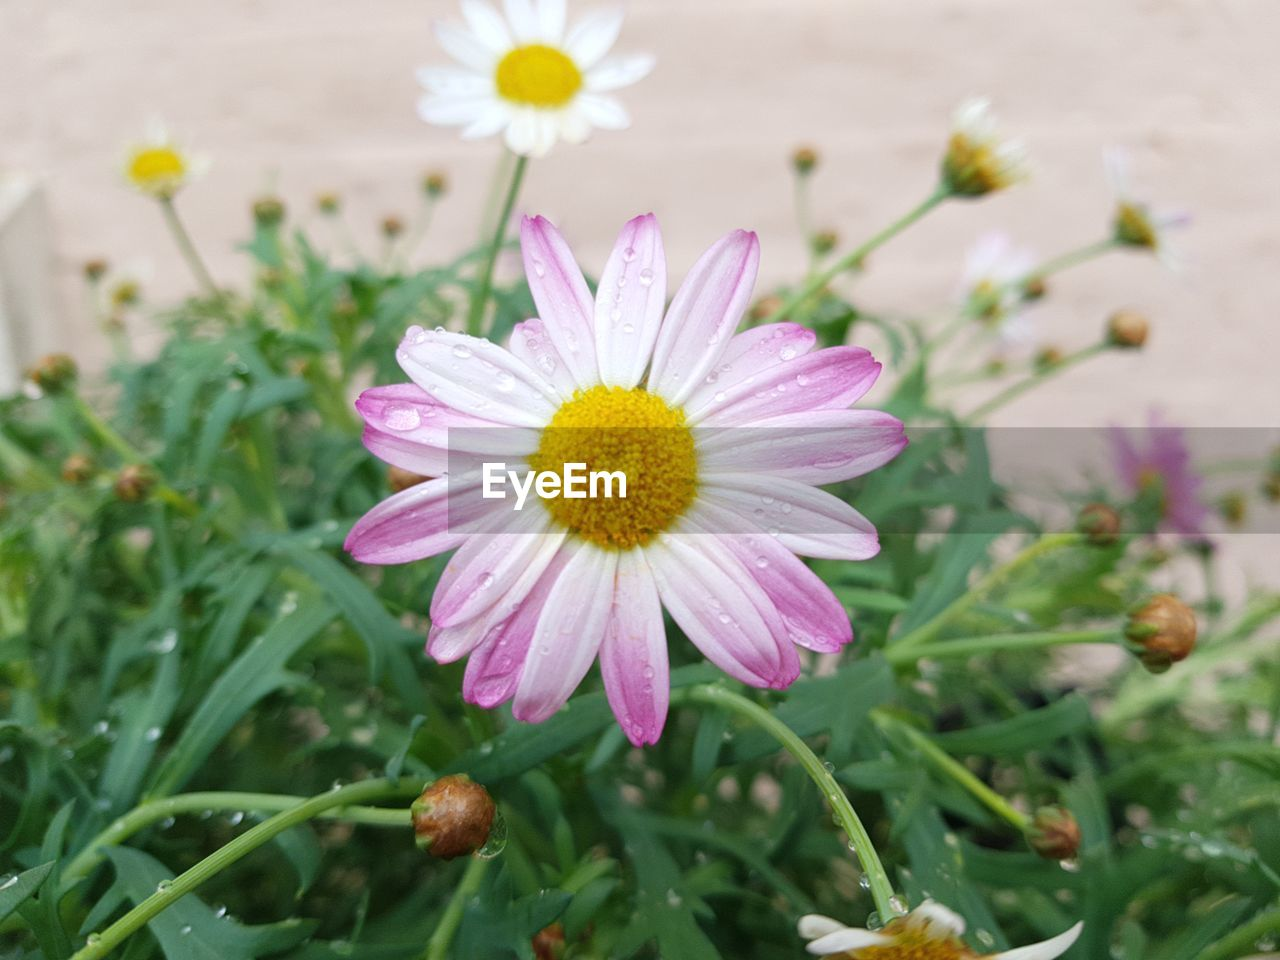 flower, flowering plant, freshness, plant, fragility, vulnerability, petal, growth, beauty in nature, flower head, inflorescence, close-up, nature, focus on foreground, pollen, pink color, no people, daisy, day, yellow, outdoors, gazania